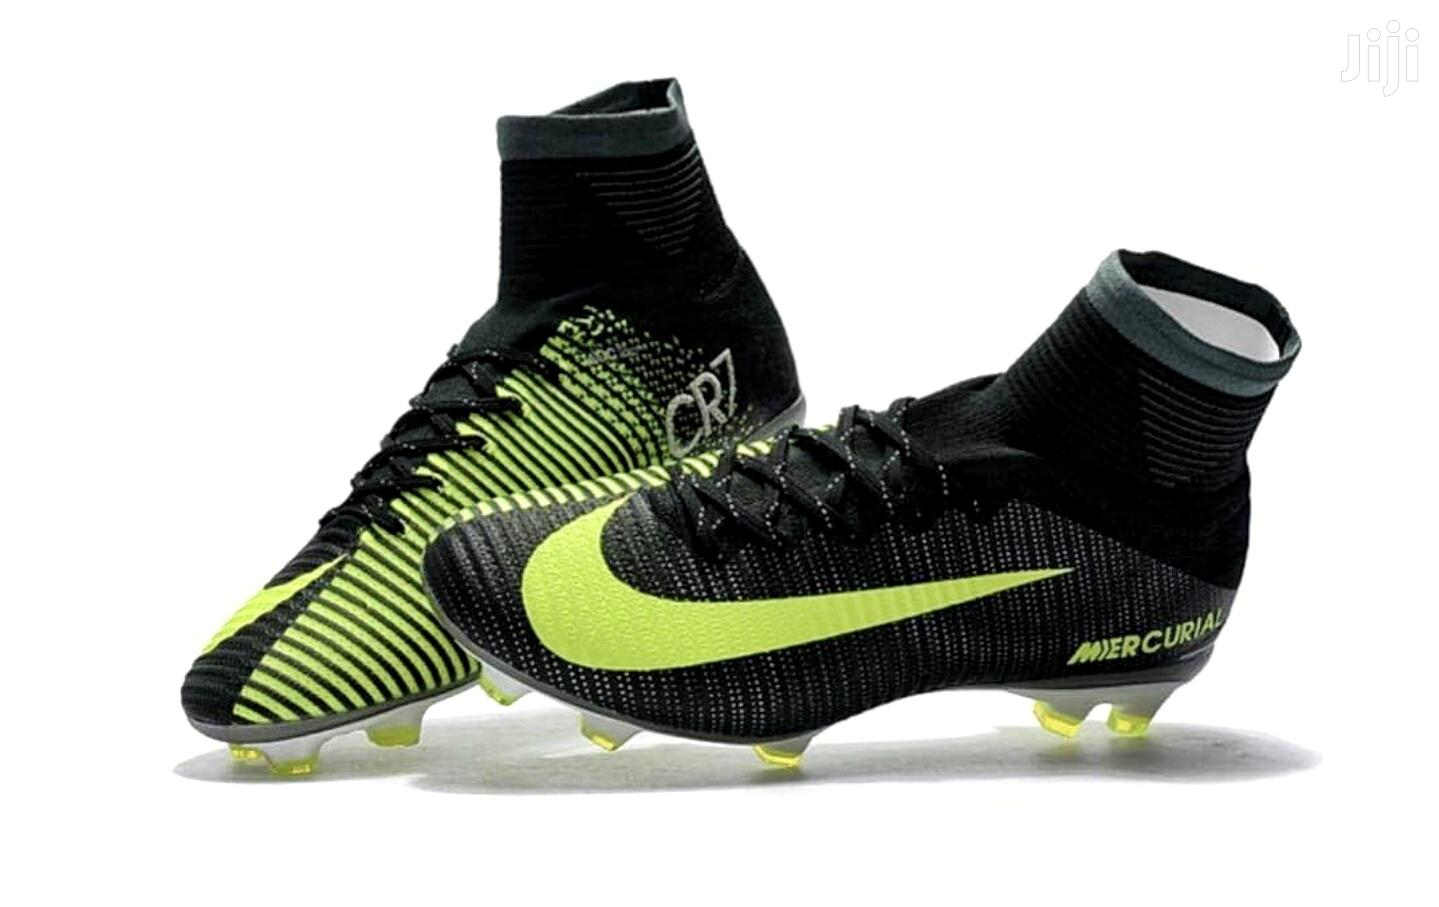 Limited Edition CR7 Kids Soccer Boots